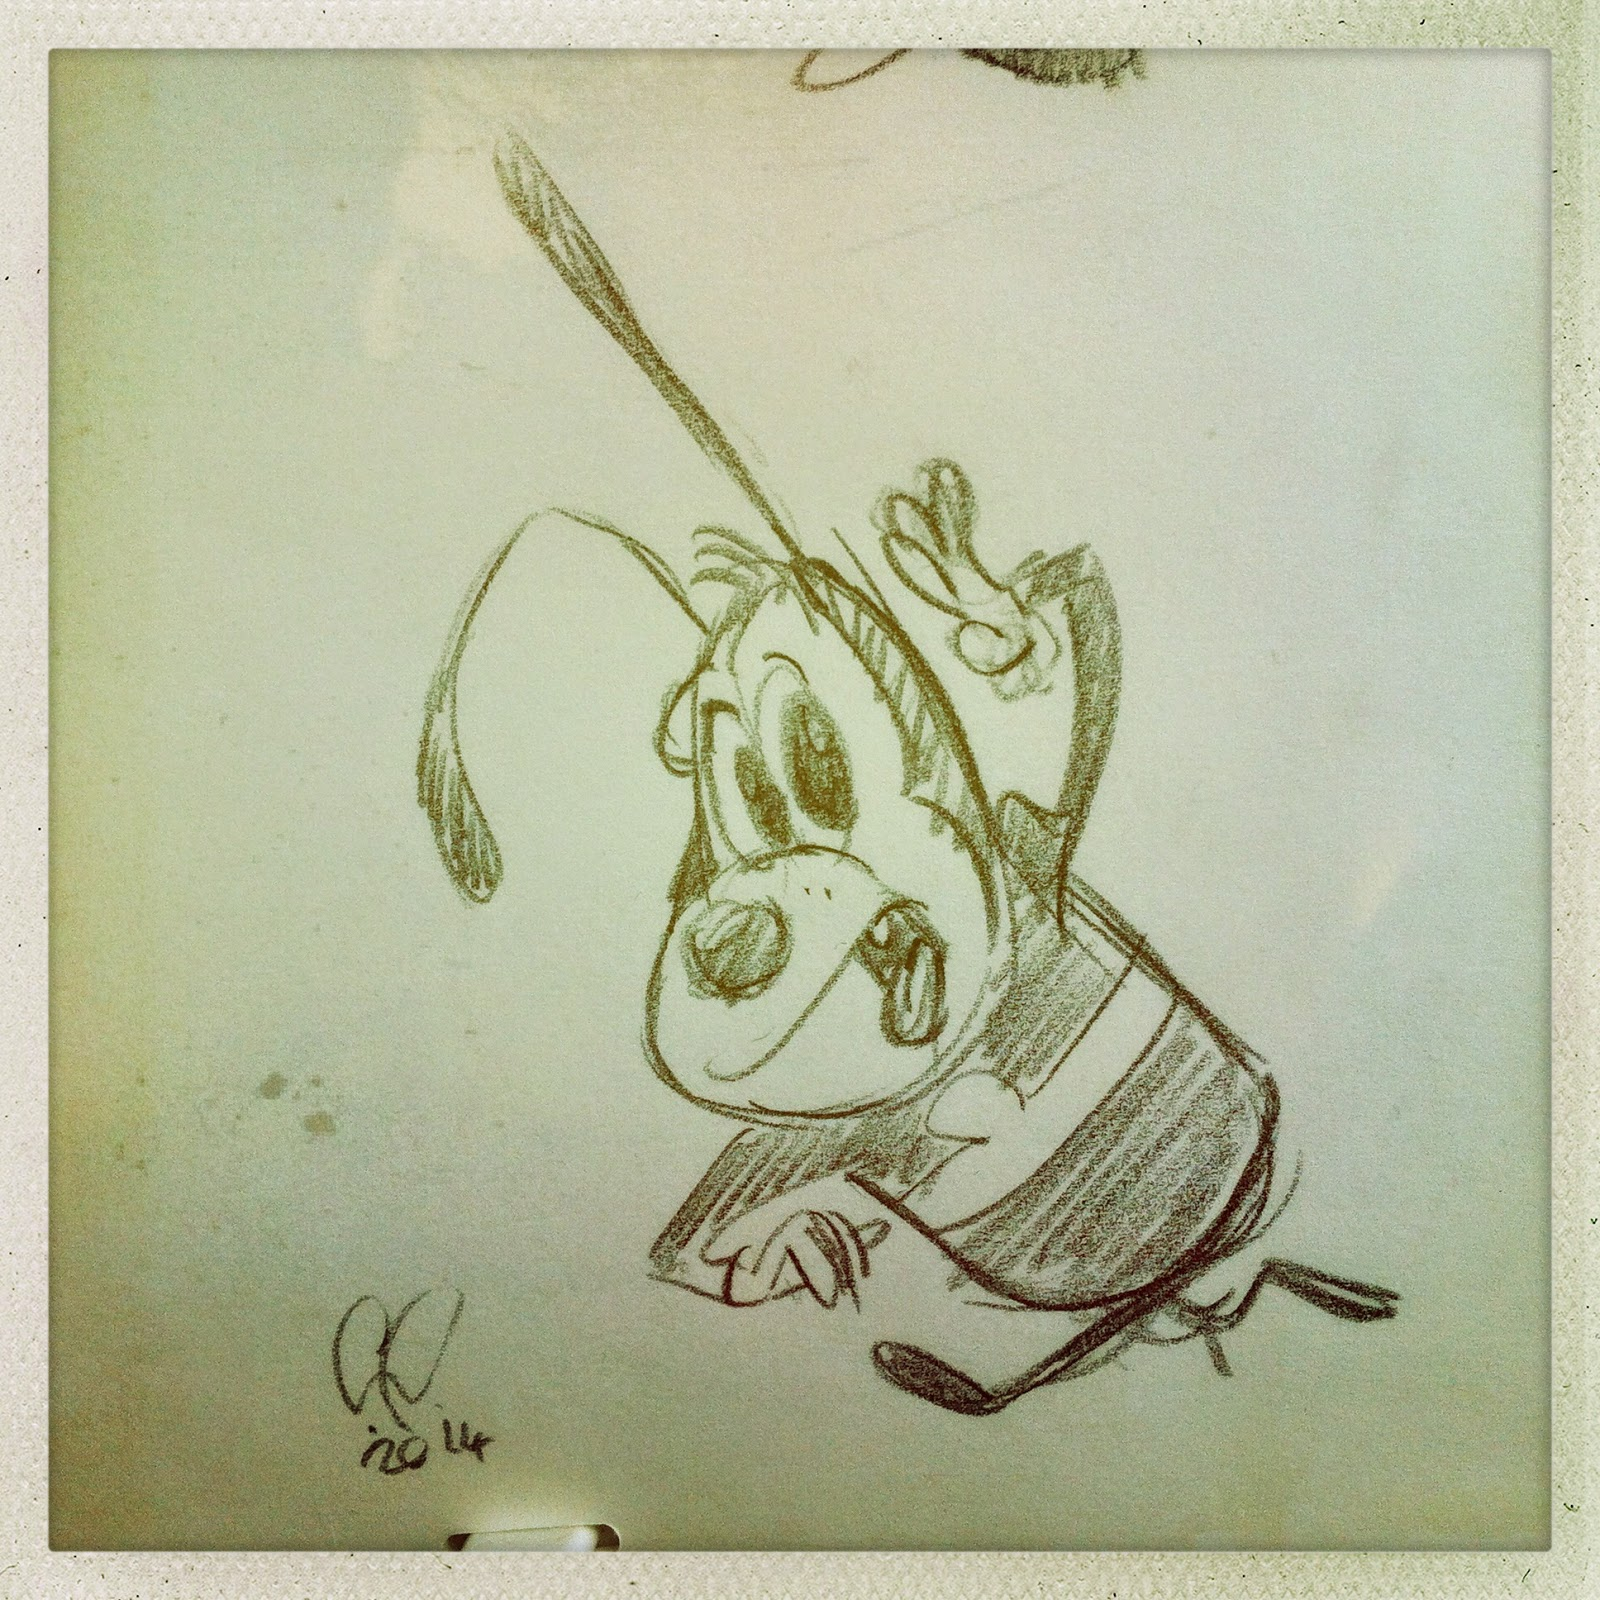 Sketch by Cesare Asaro - Creative Director at Curio & Co. (Curio and Co. OG - www.curioandco.com) - retro character design.